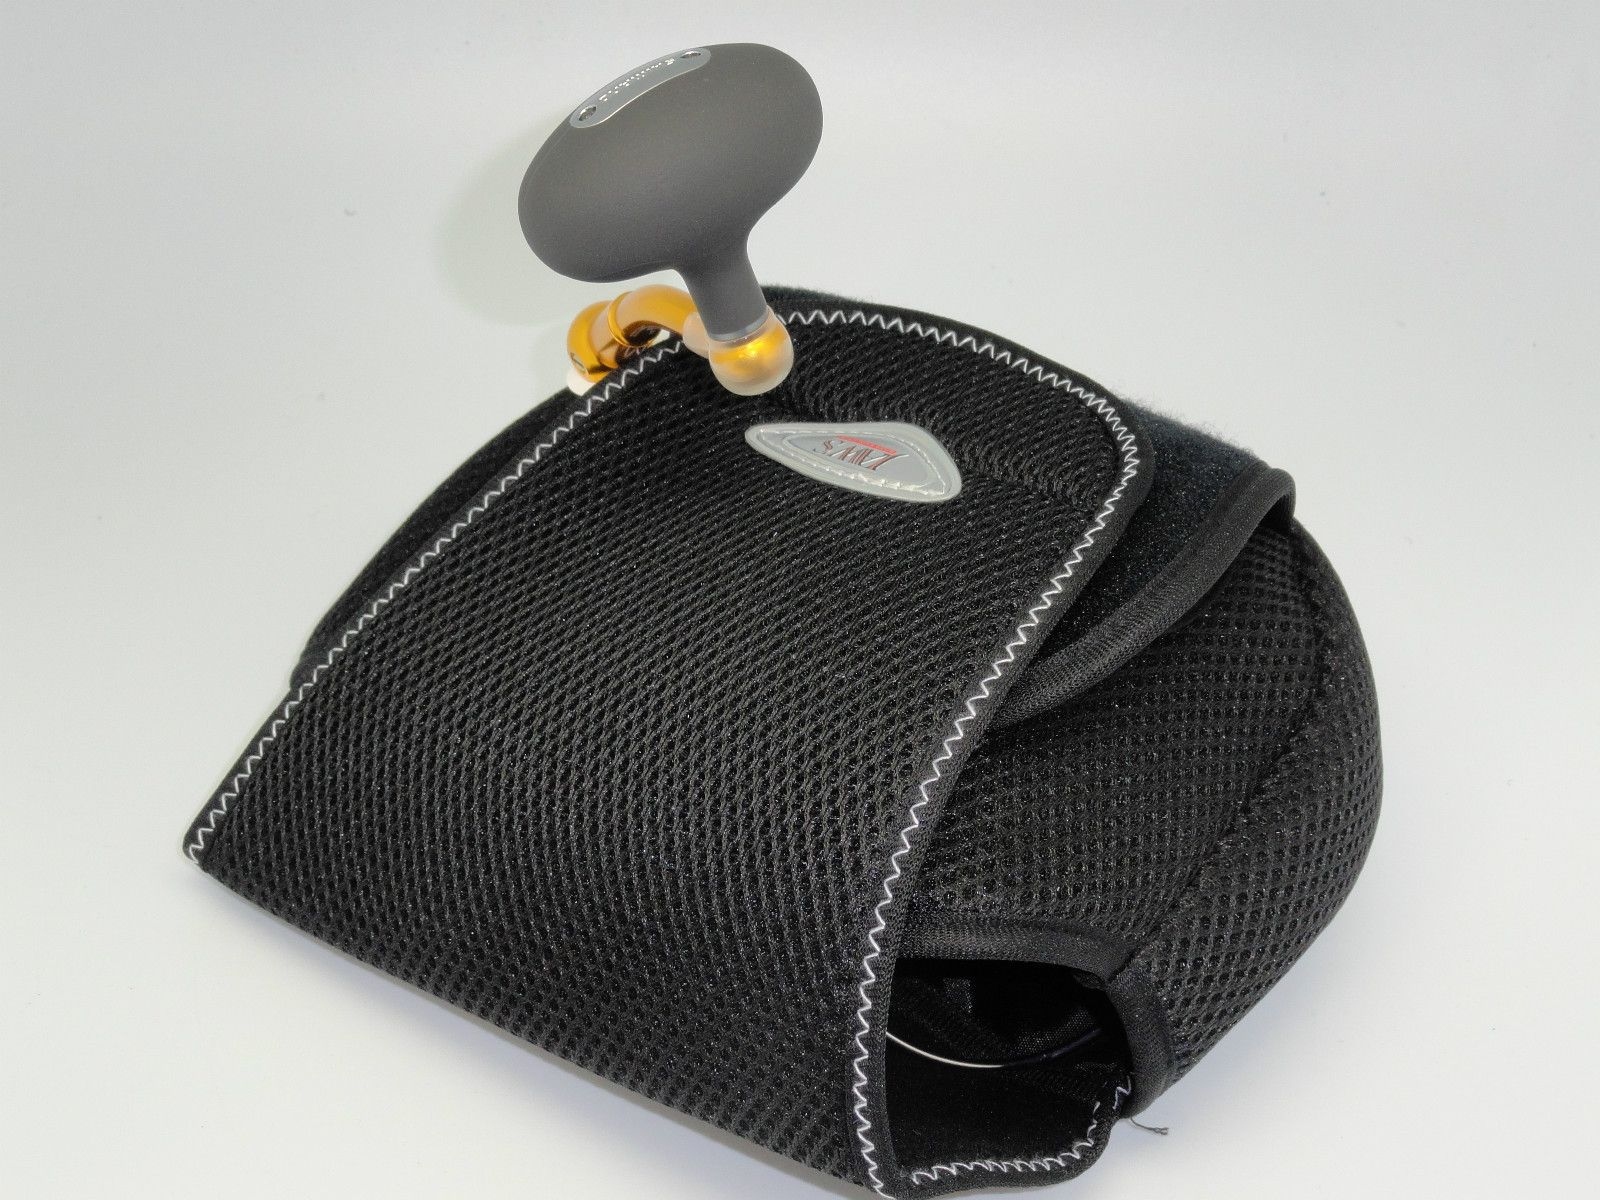 Jaws Spinning Reel Pouch   Jaws Spinning Reel Cover Pouch